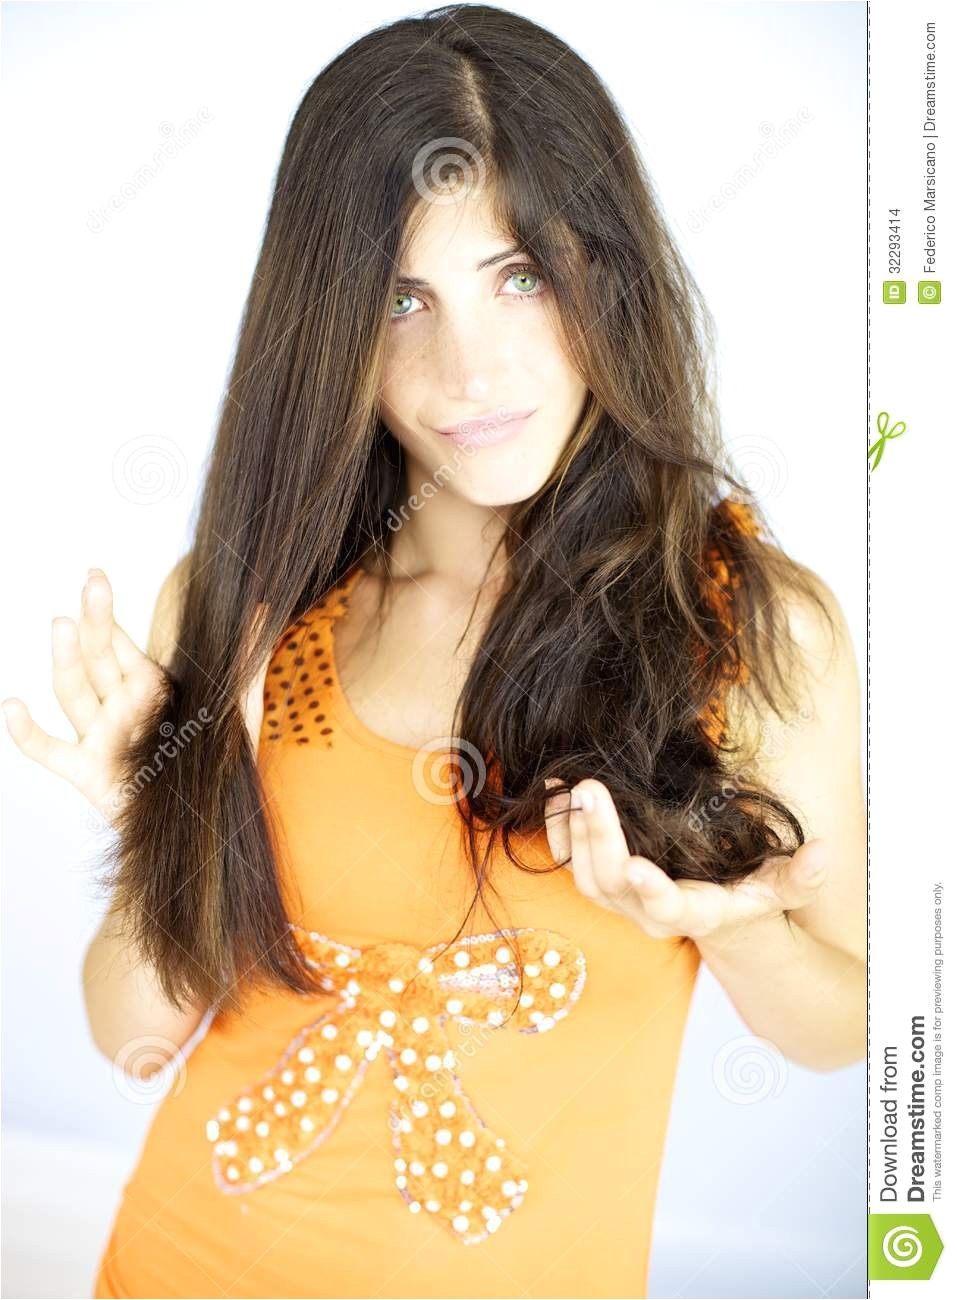 stock images woman showing half head straight hair other half wavy two different hairstyles one image